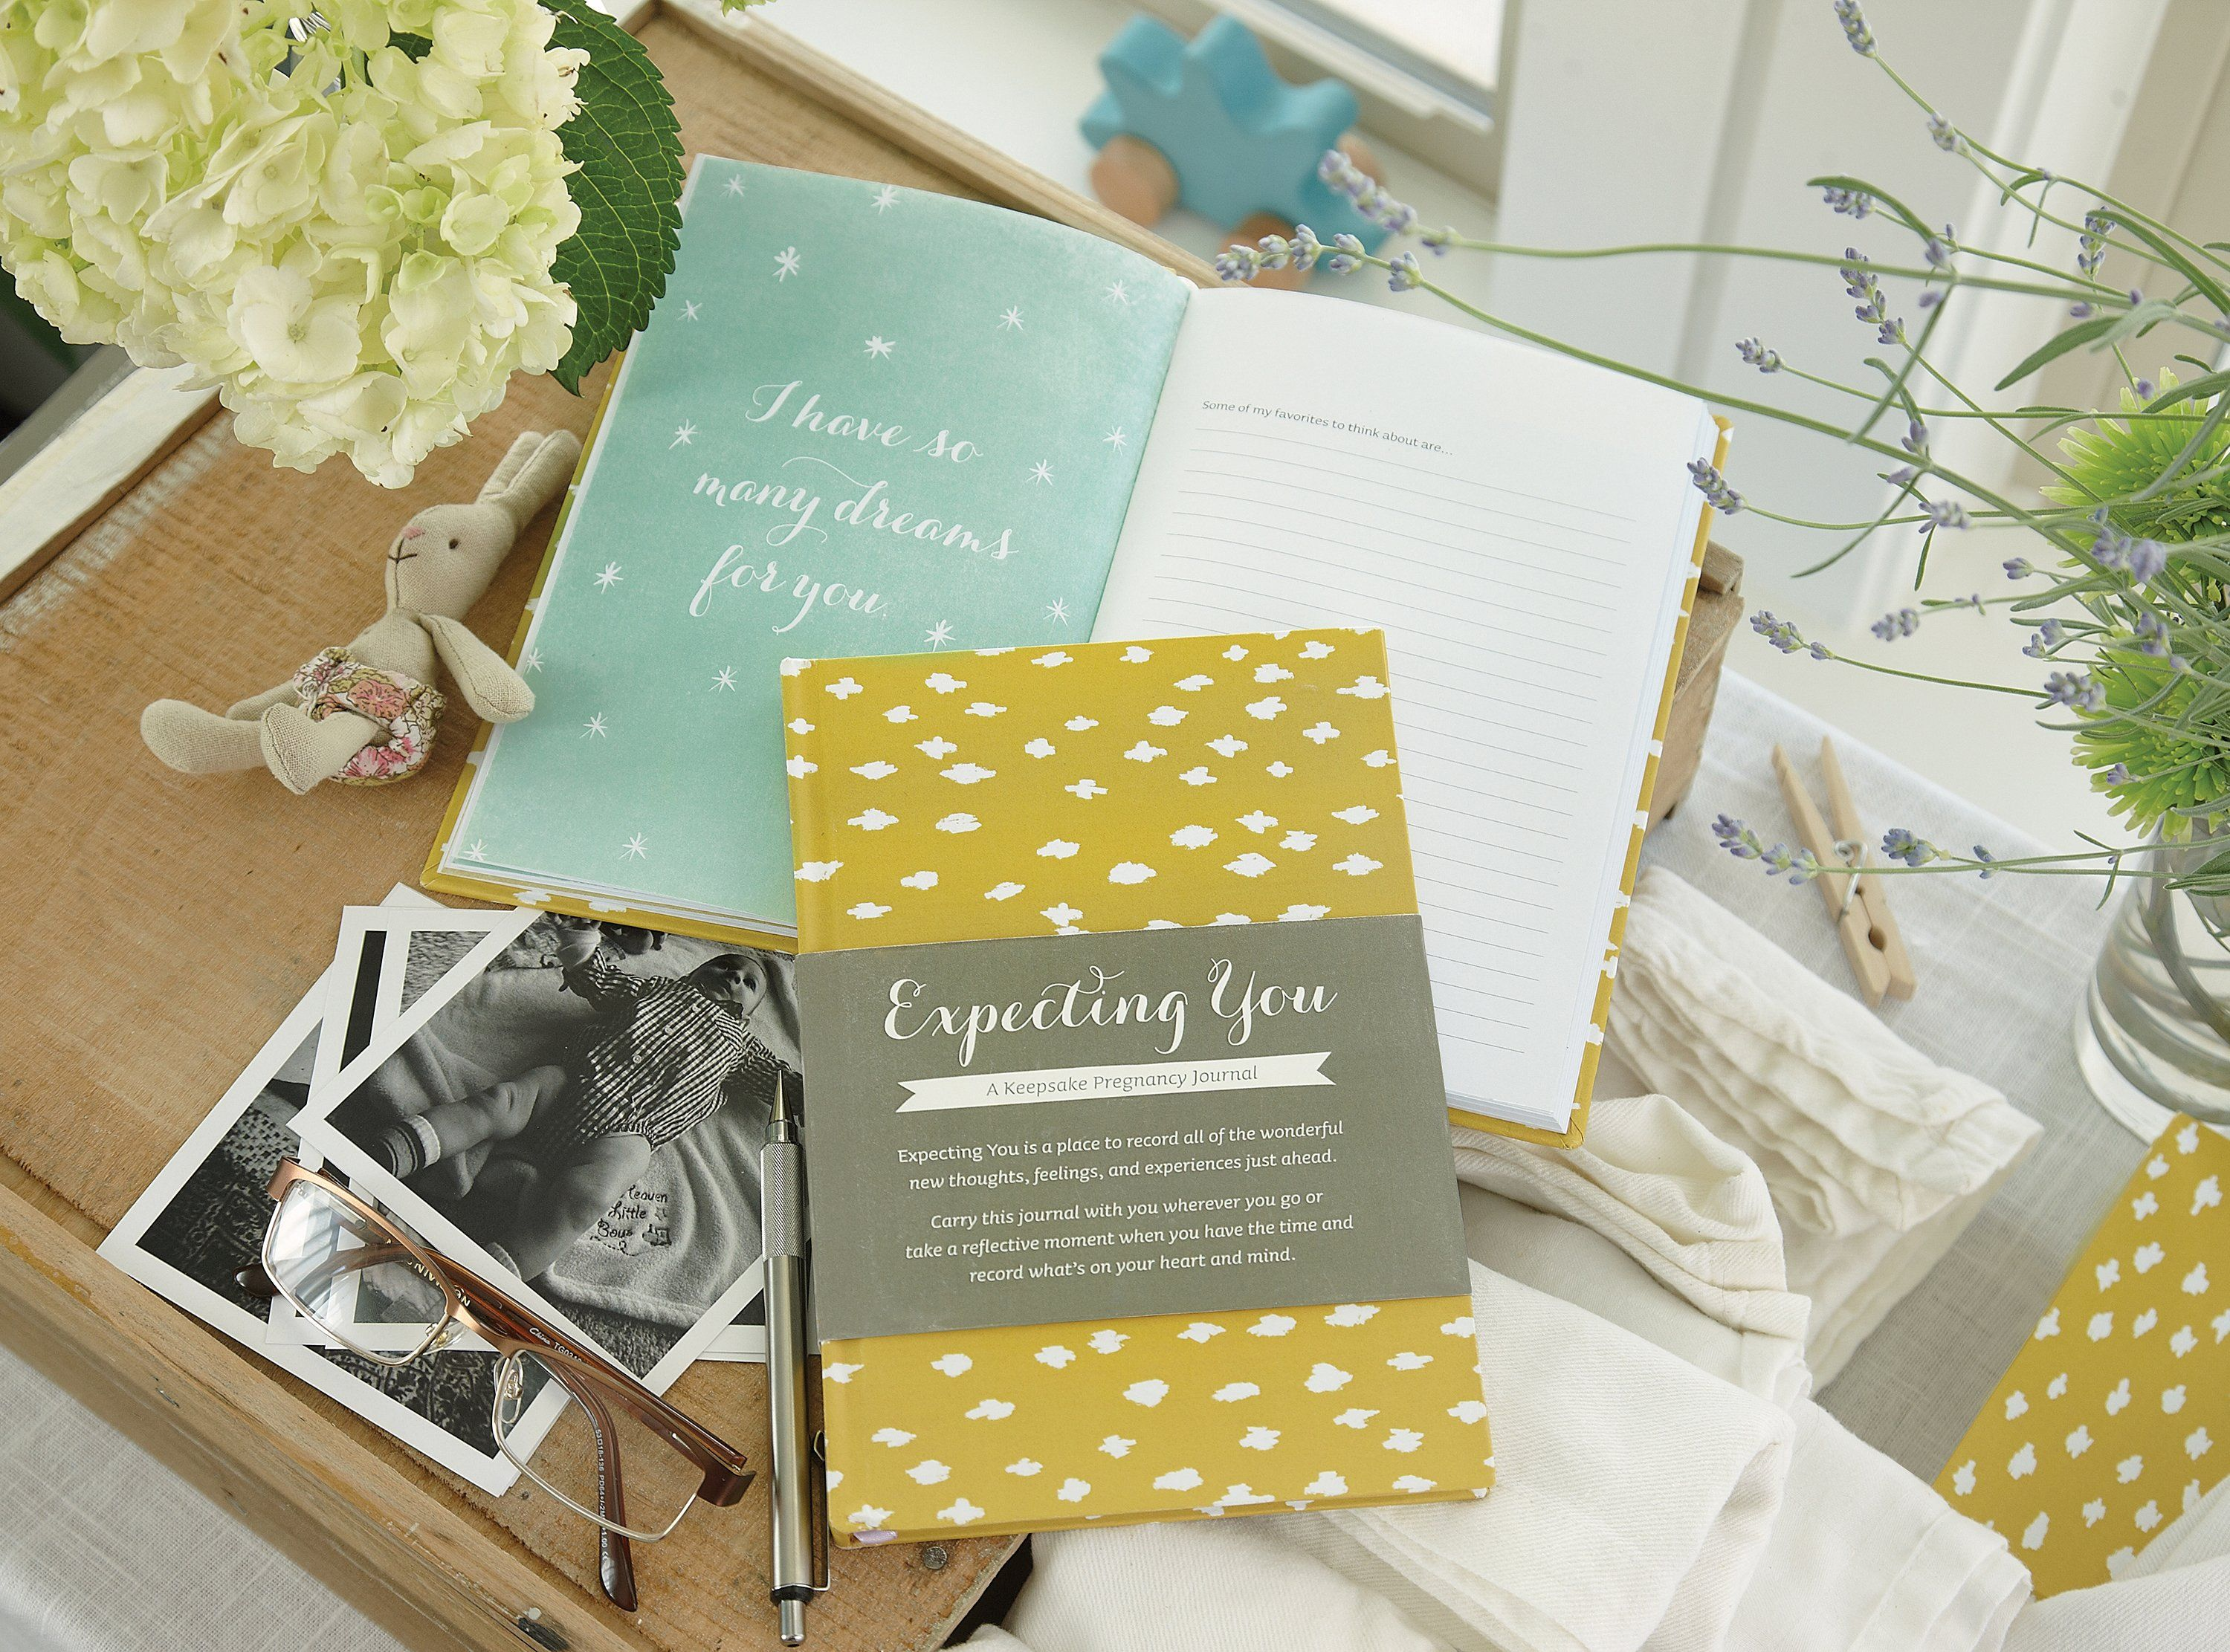 Expecting You: A Keepsake Pregnancy Journal - Project Nursery